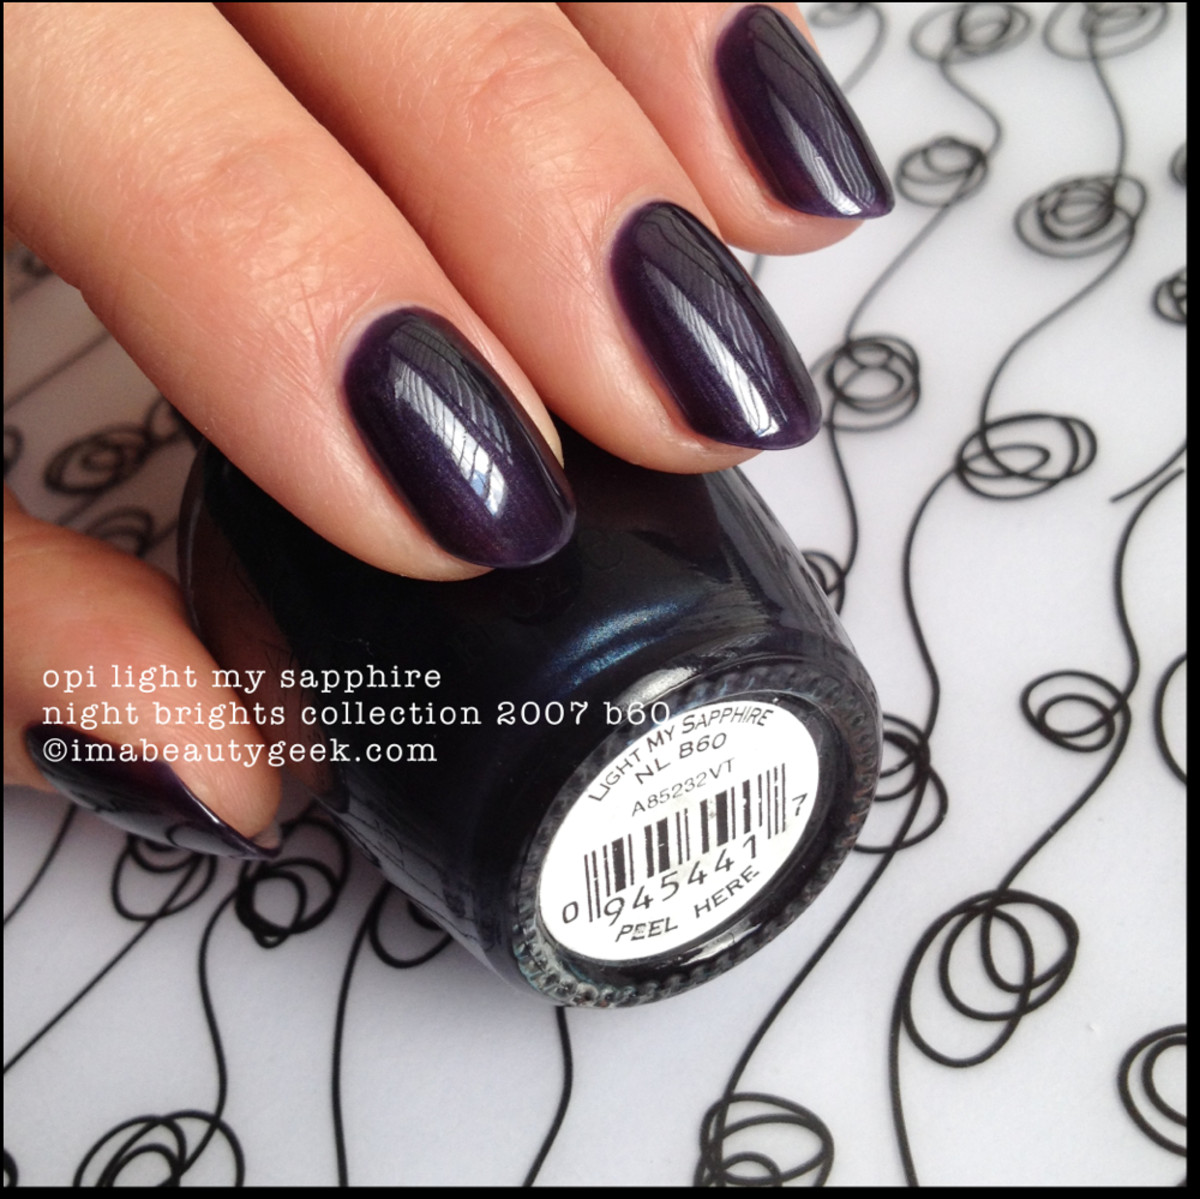 OPI Light My Sapphire OPI Night Brights Collection 2007 Beautygeeks